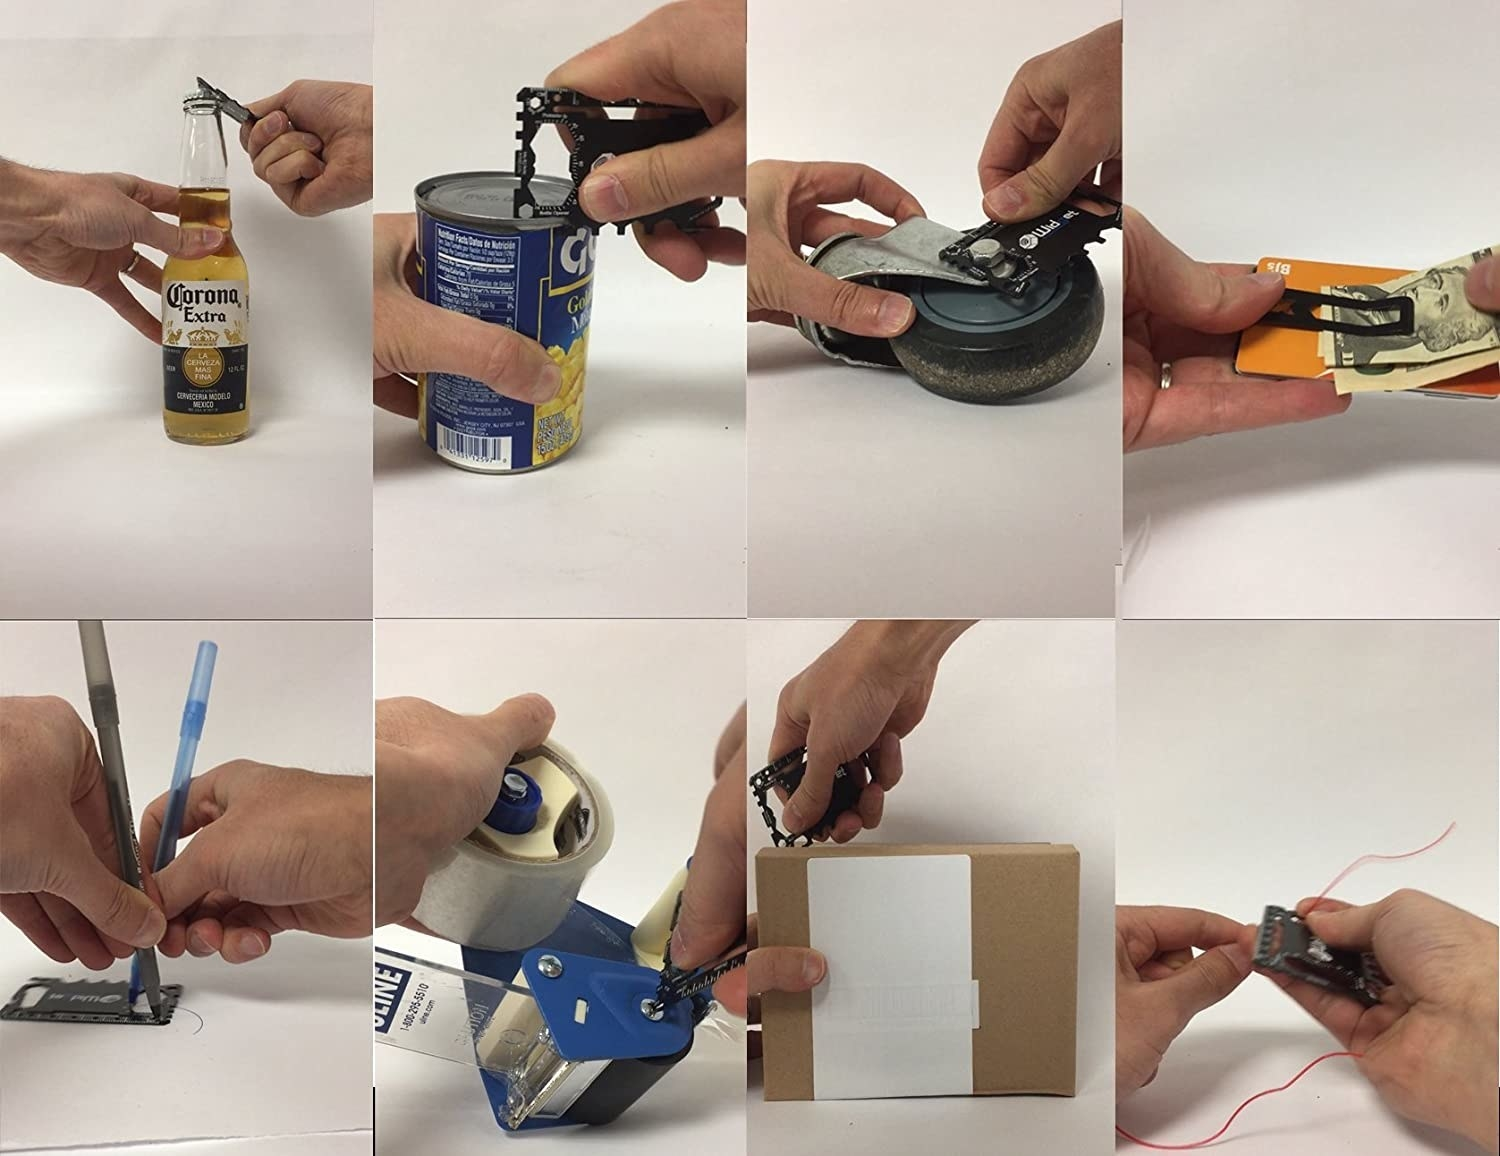 A flat, rectangular tool that's cut in a way that encompasses 43 different tools being demonstrated to open a bottle, a can, use as a stencil, wrench, boxcutter, wire cutter, and money clip